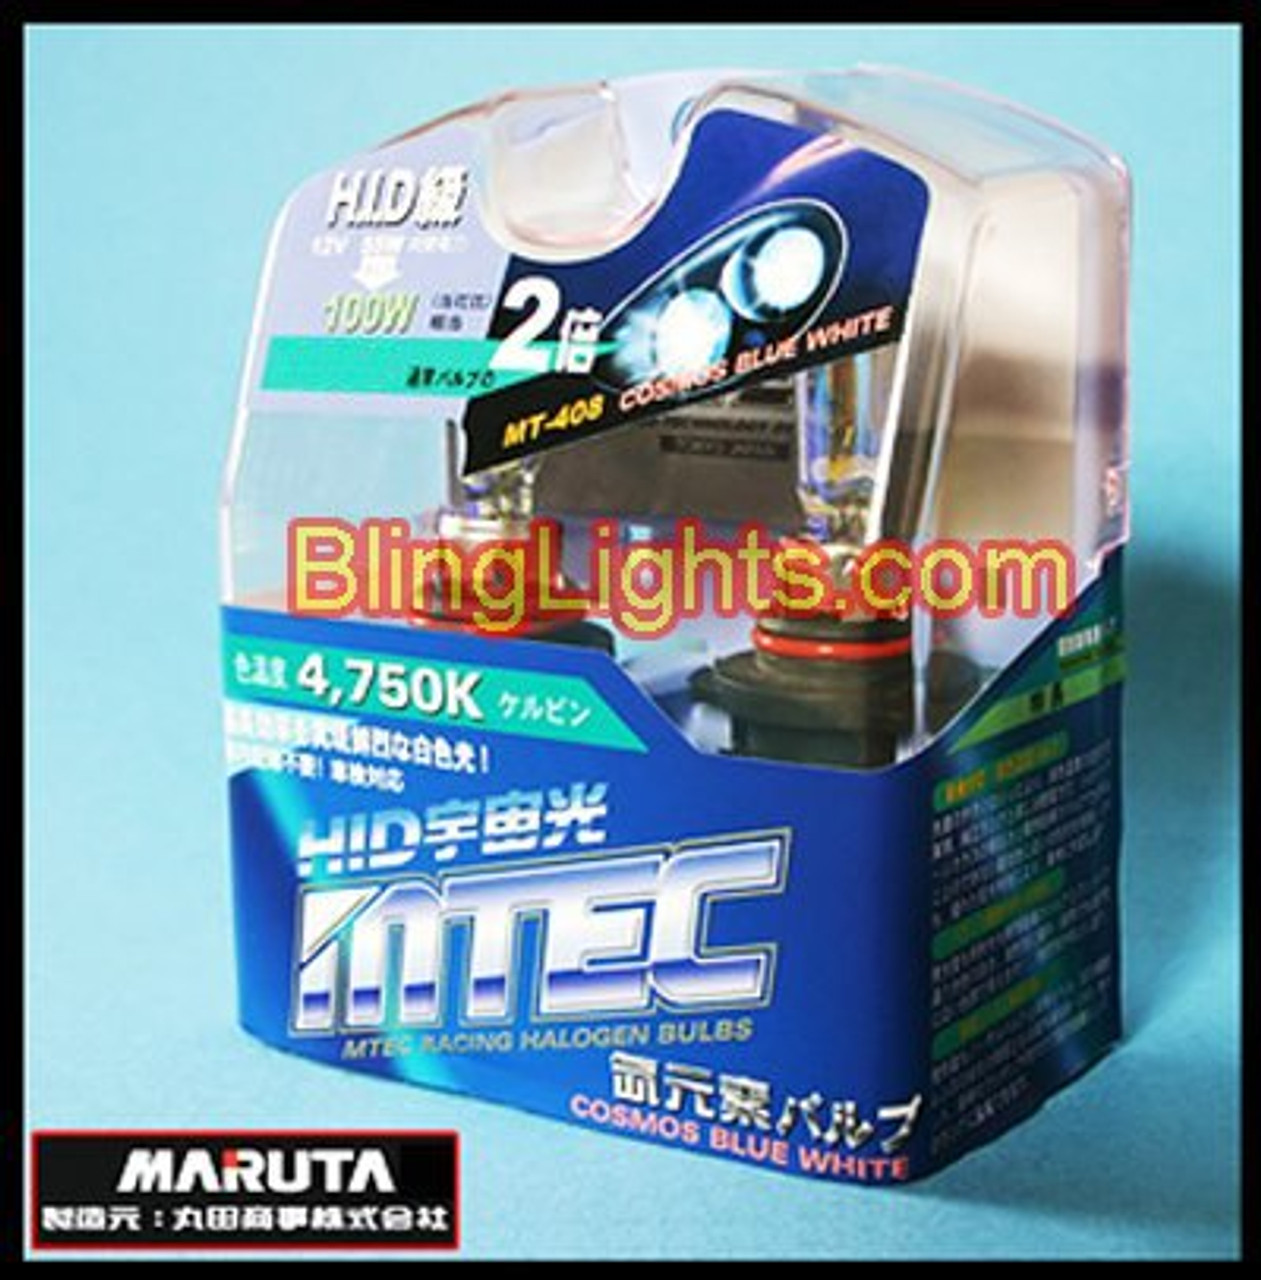 2009 2010 2011 Nissan Cube Bright White Bulbs For Headlamps Headlights Head Lamps Lights Blinglights Com